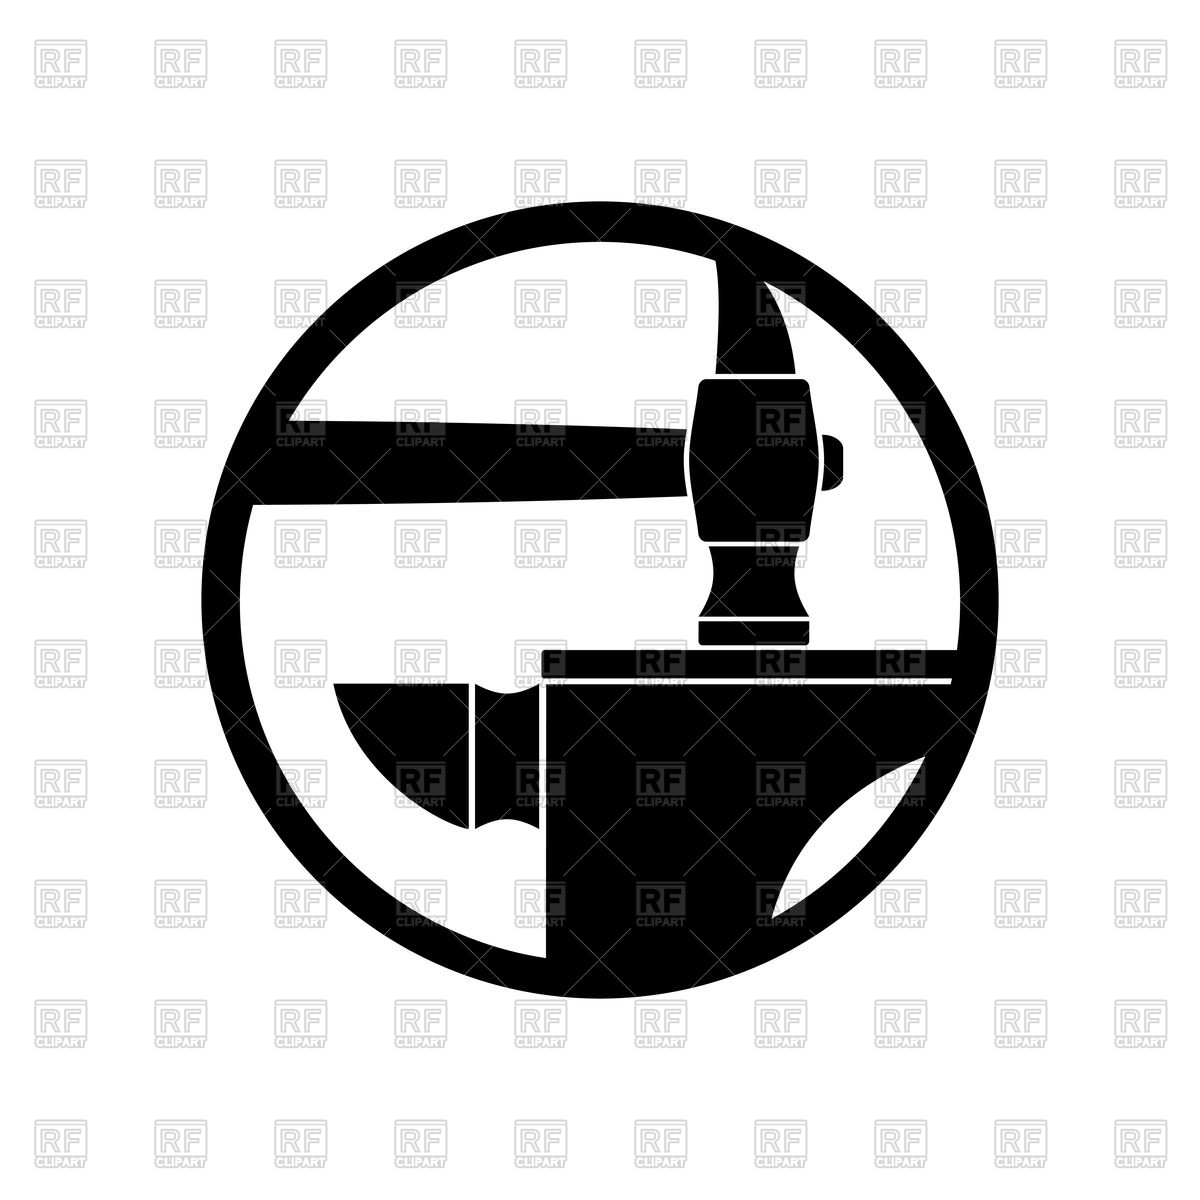 1200x1200 Forge Icon Vector Image Vector Artwork Of Signs, Symbols, Maps